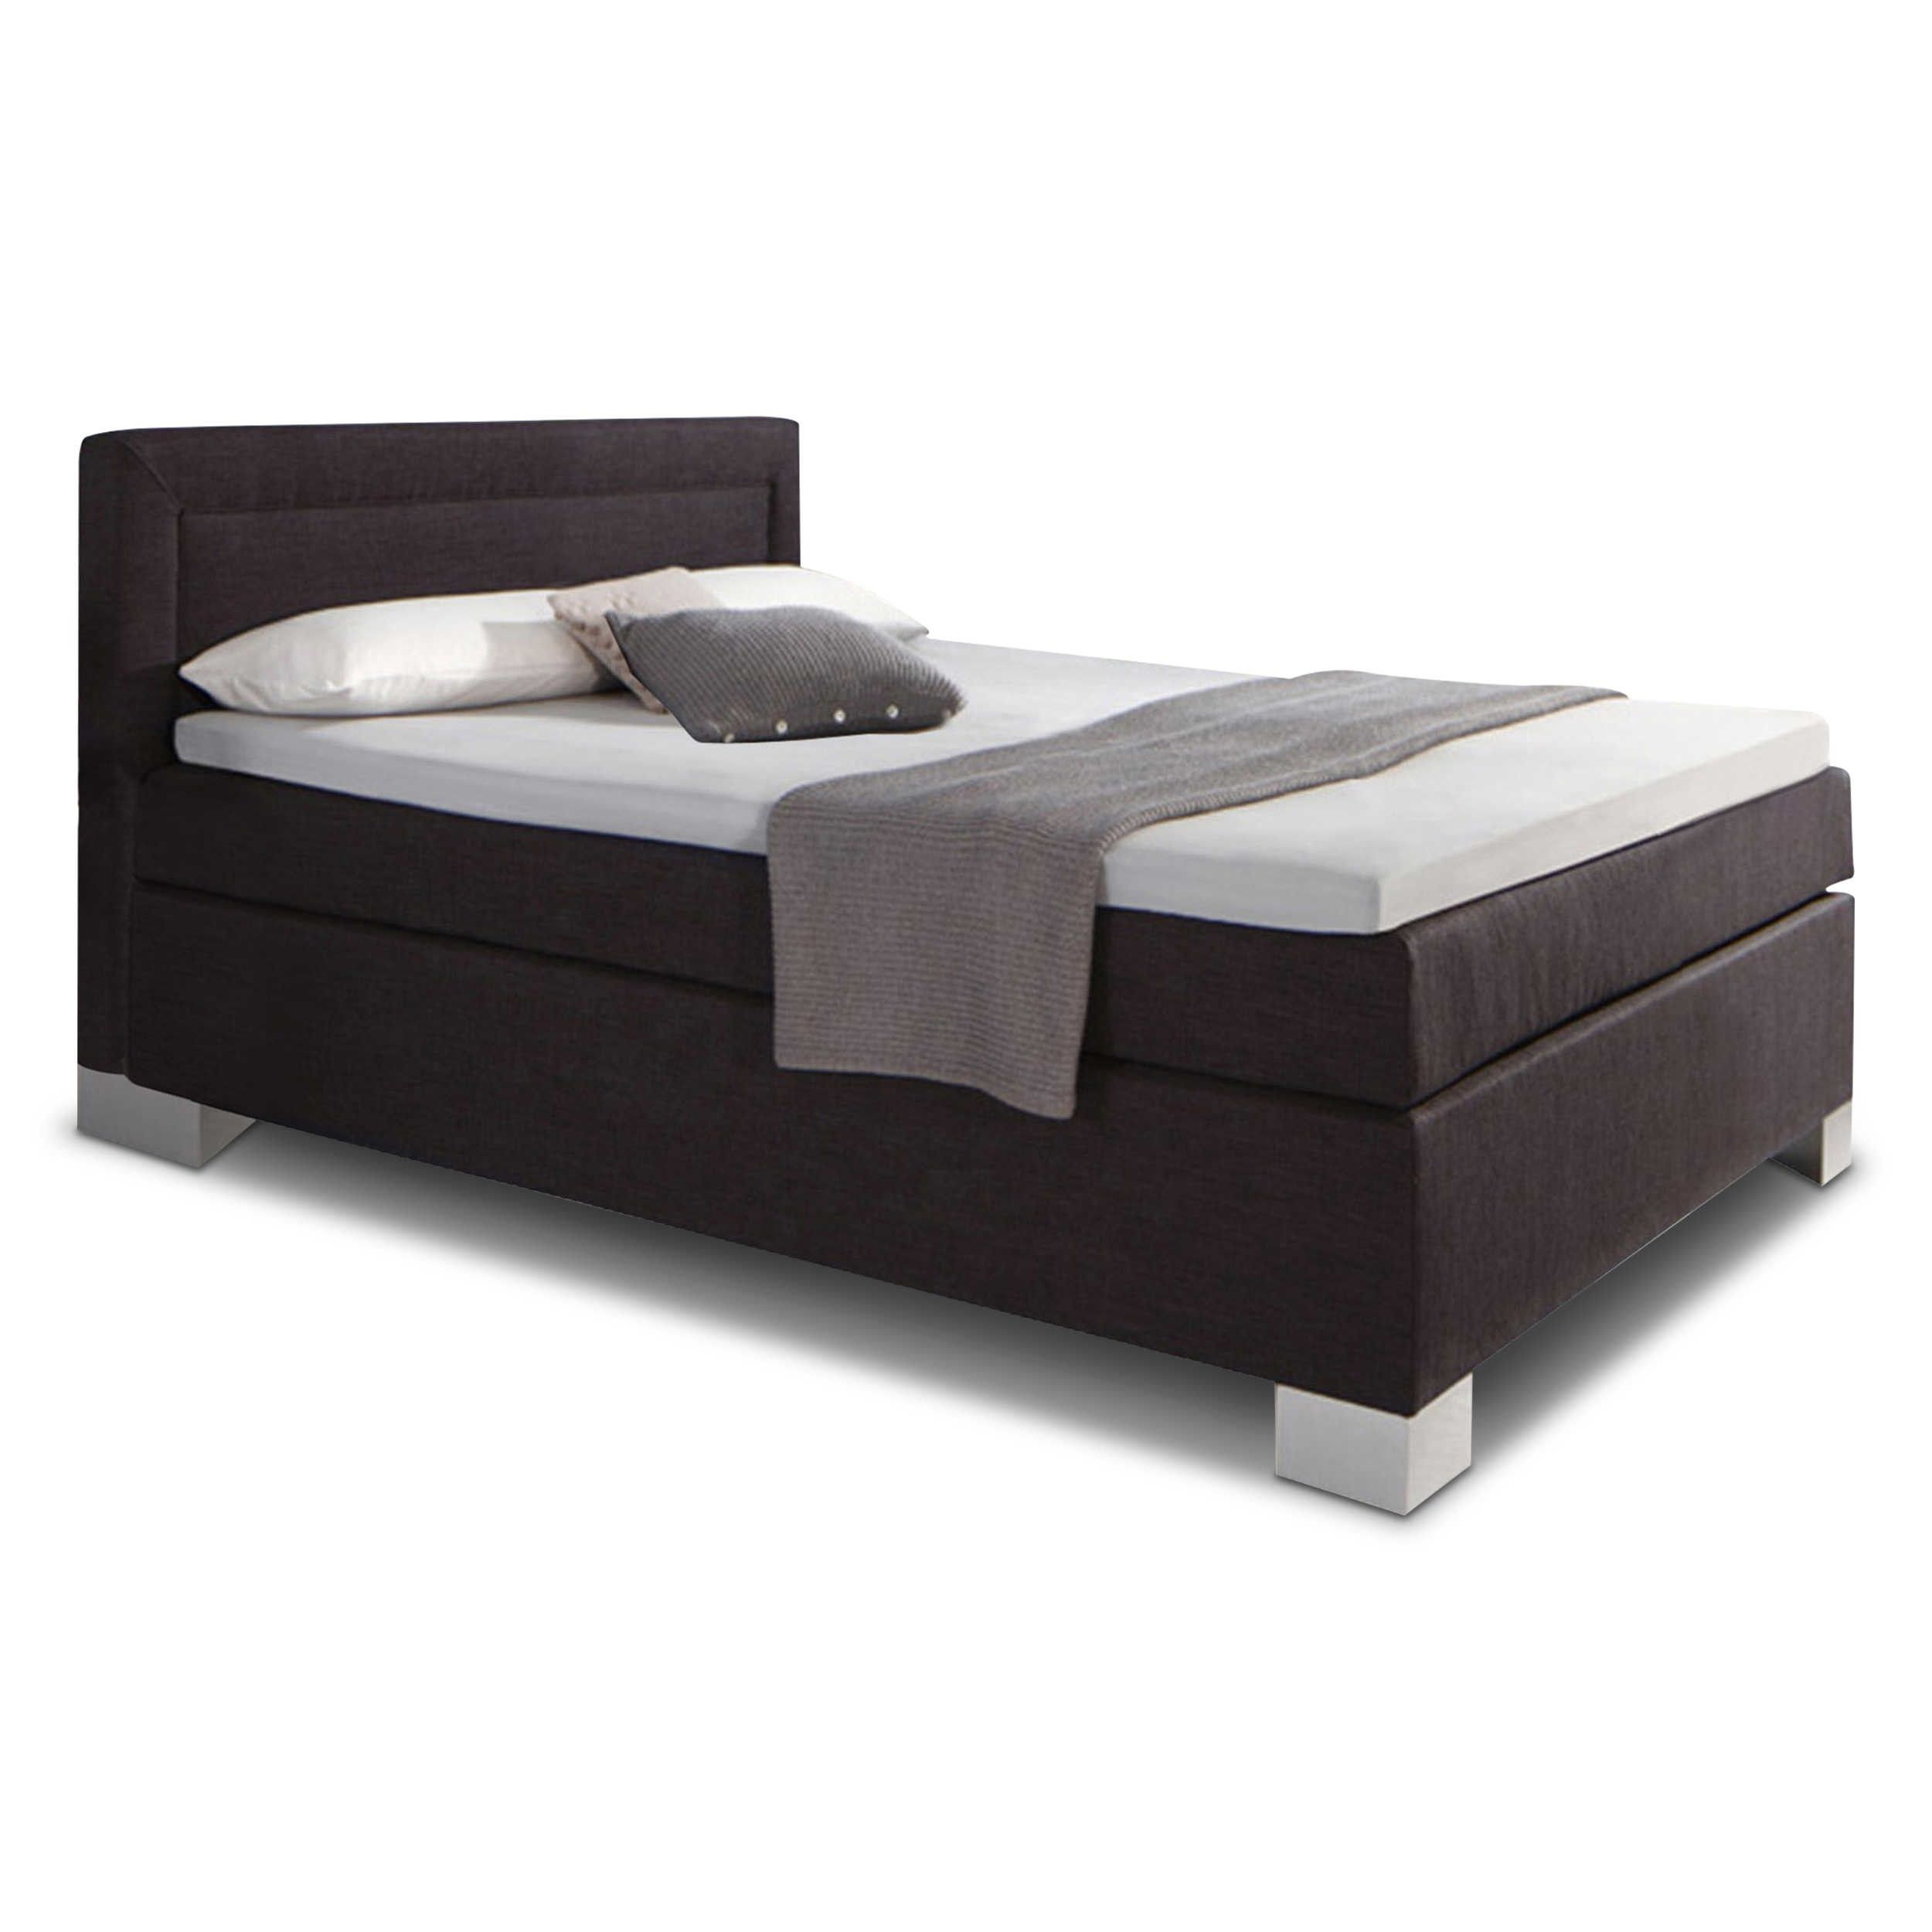 Futonbett 180x200 Futonbett 180x200 Wei Simple Finest Erstaunlich